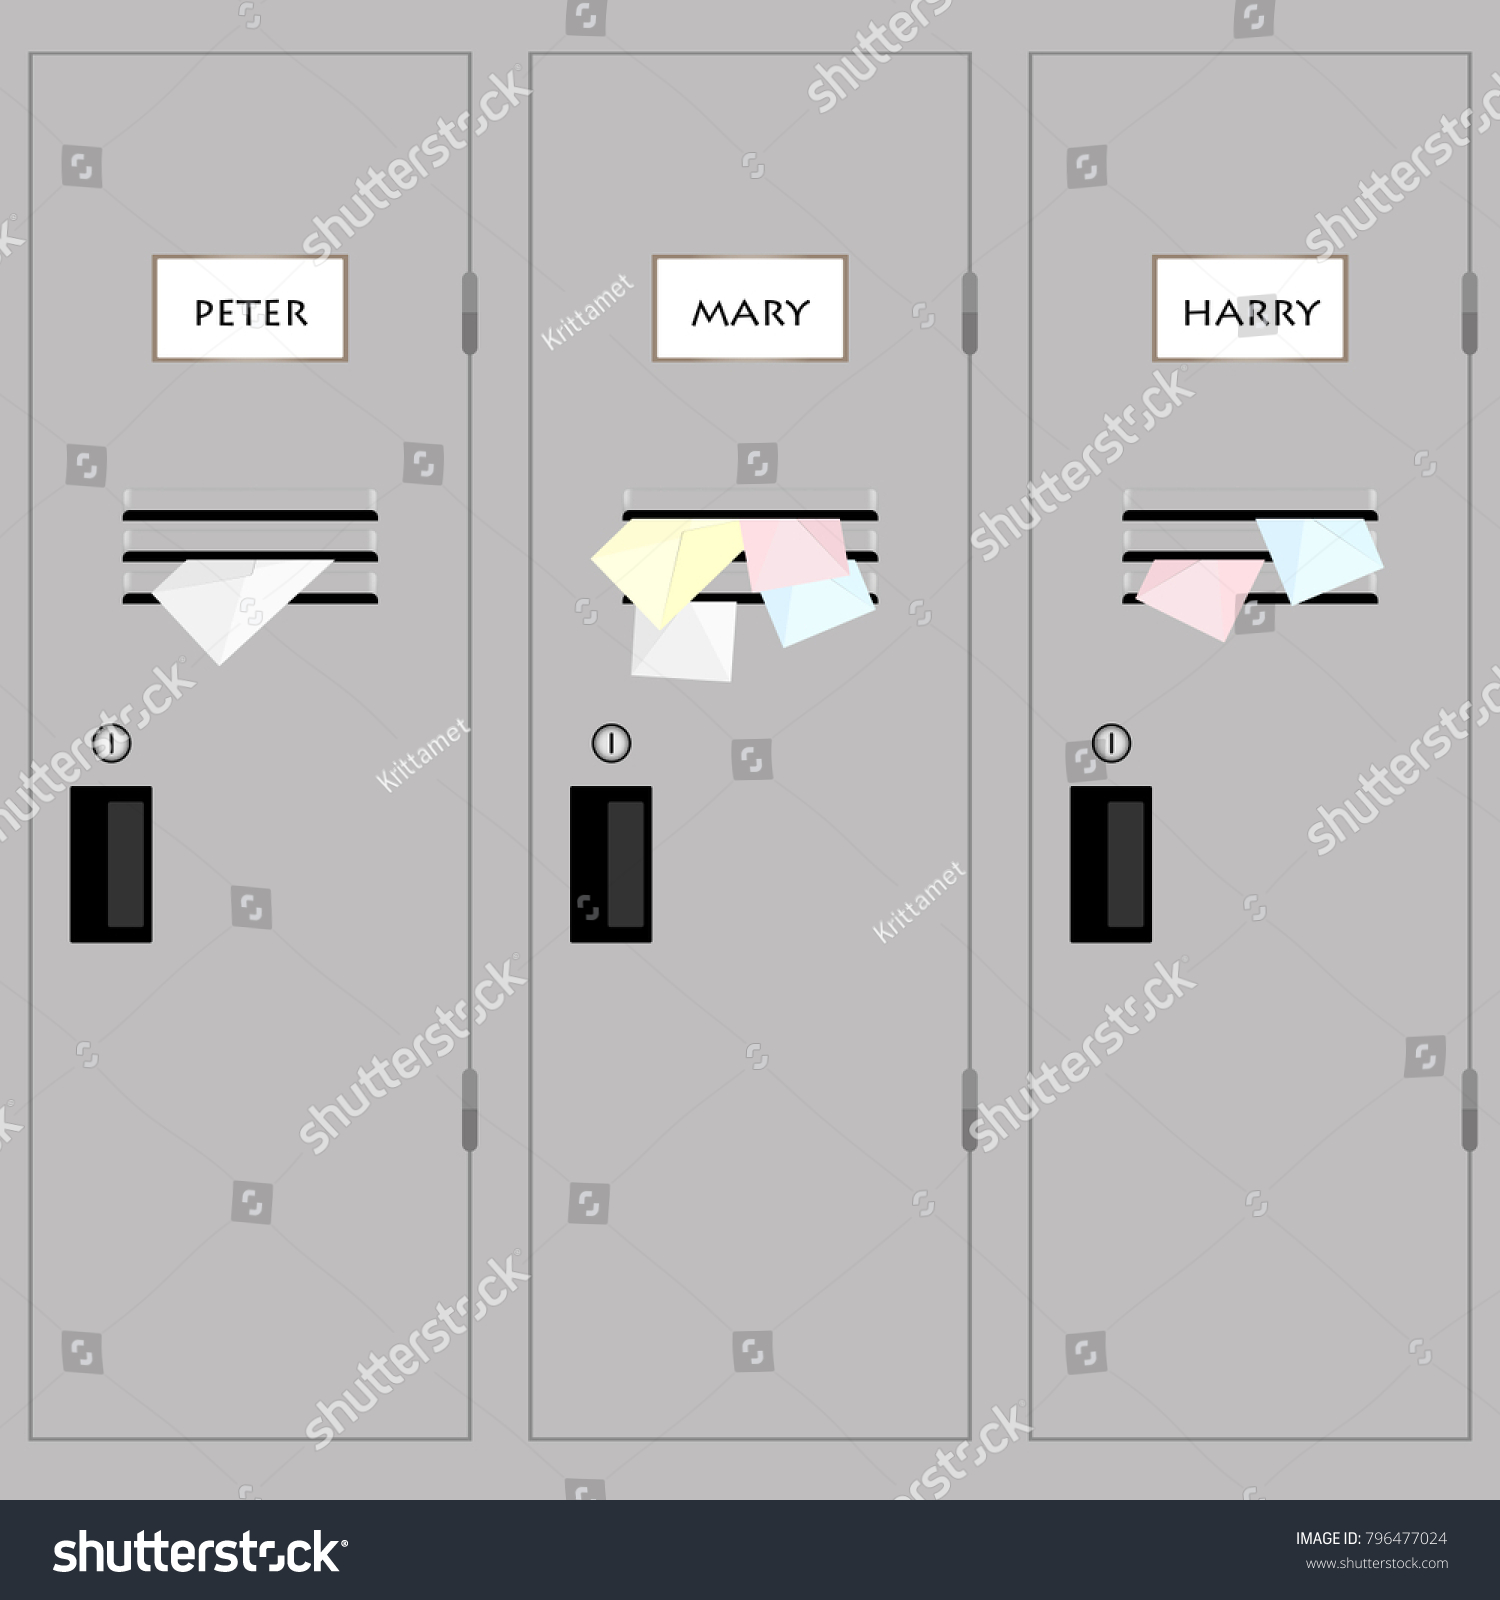 hight resolution of have a love letter in the school locker vector